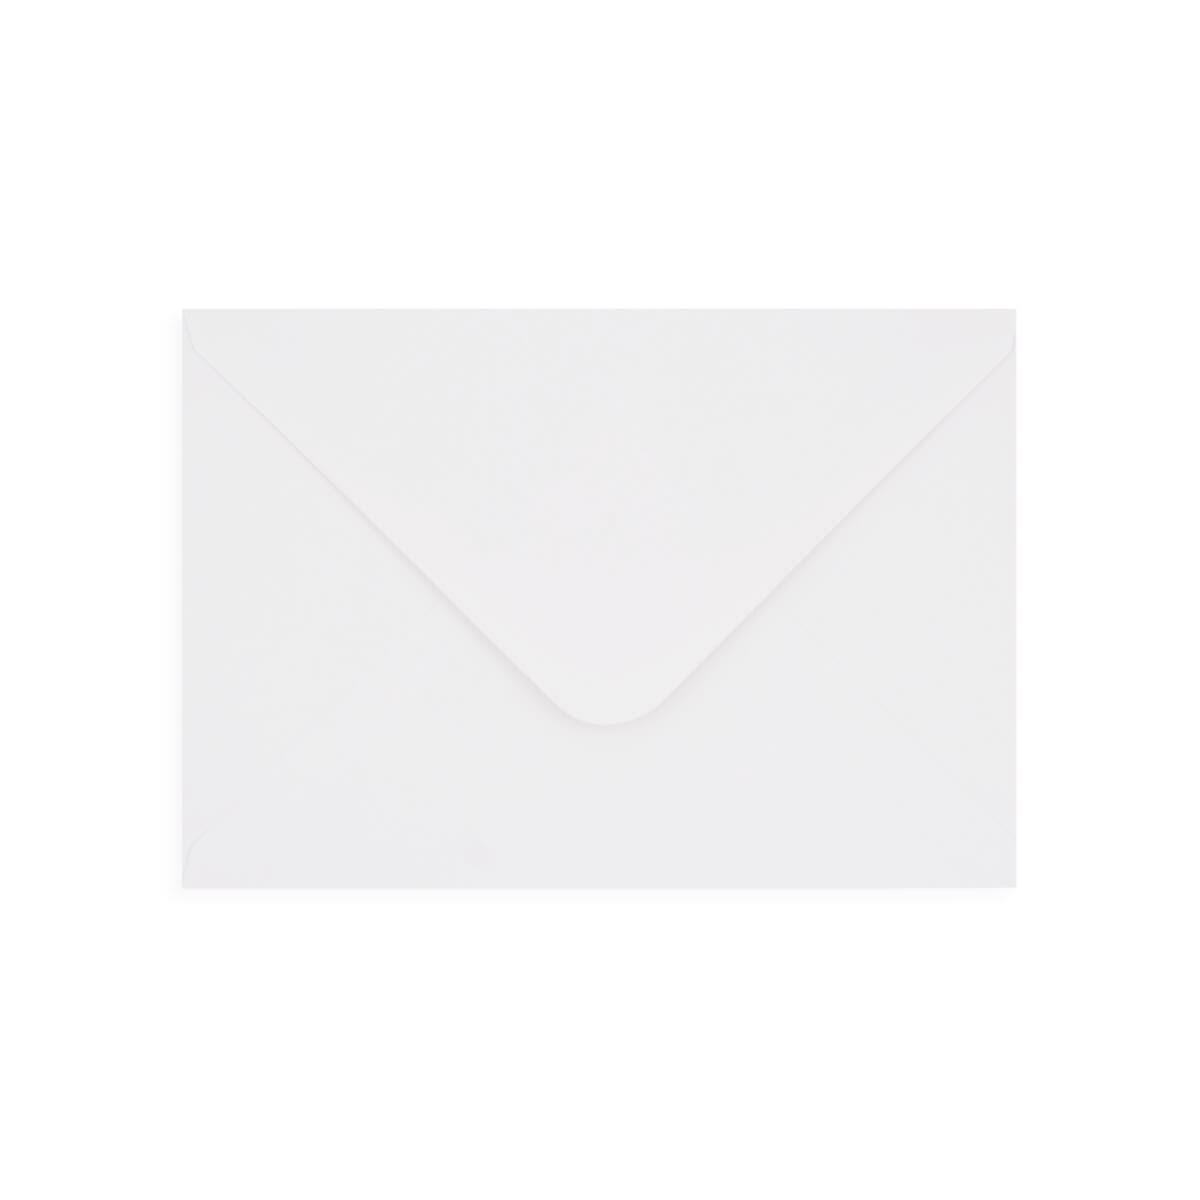 WHITE 133 x 184 mm ENVELOPES 130gsm (i8)